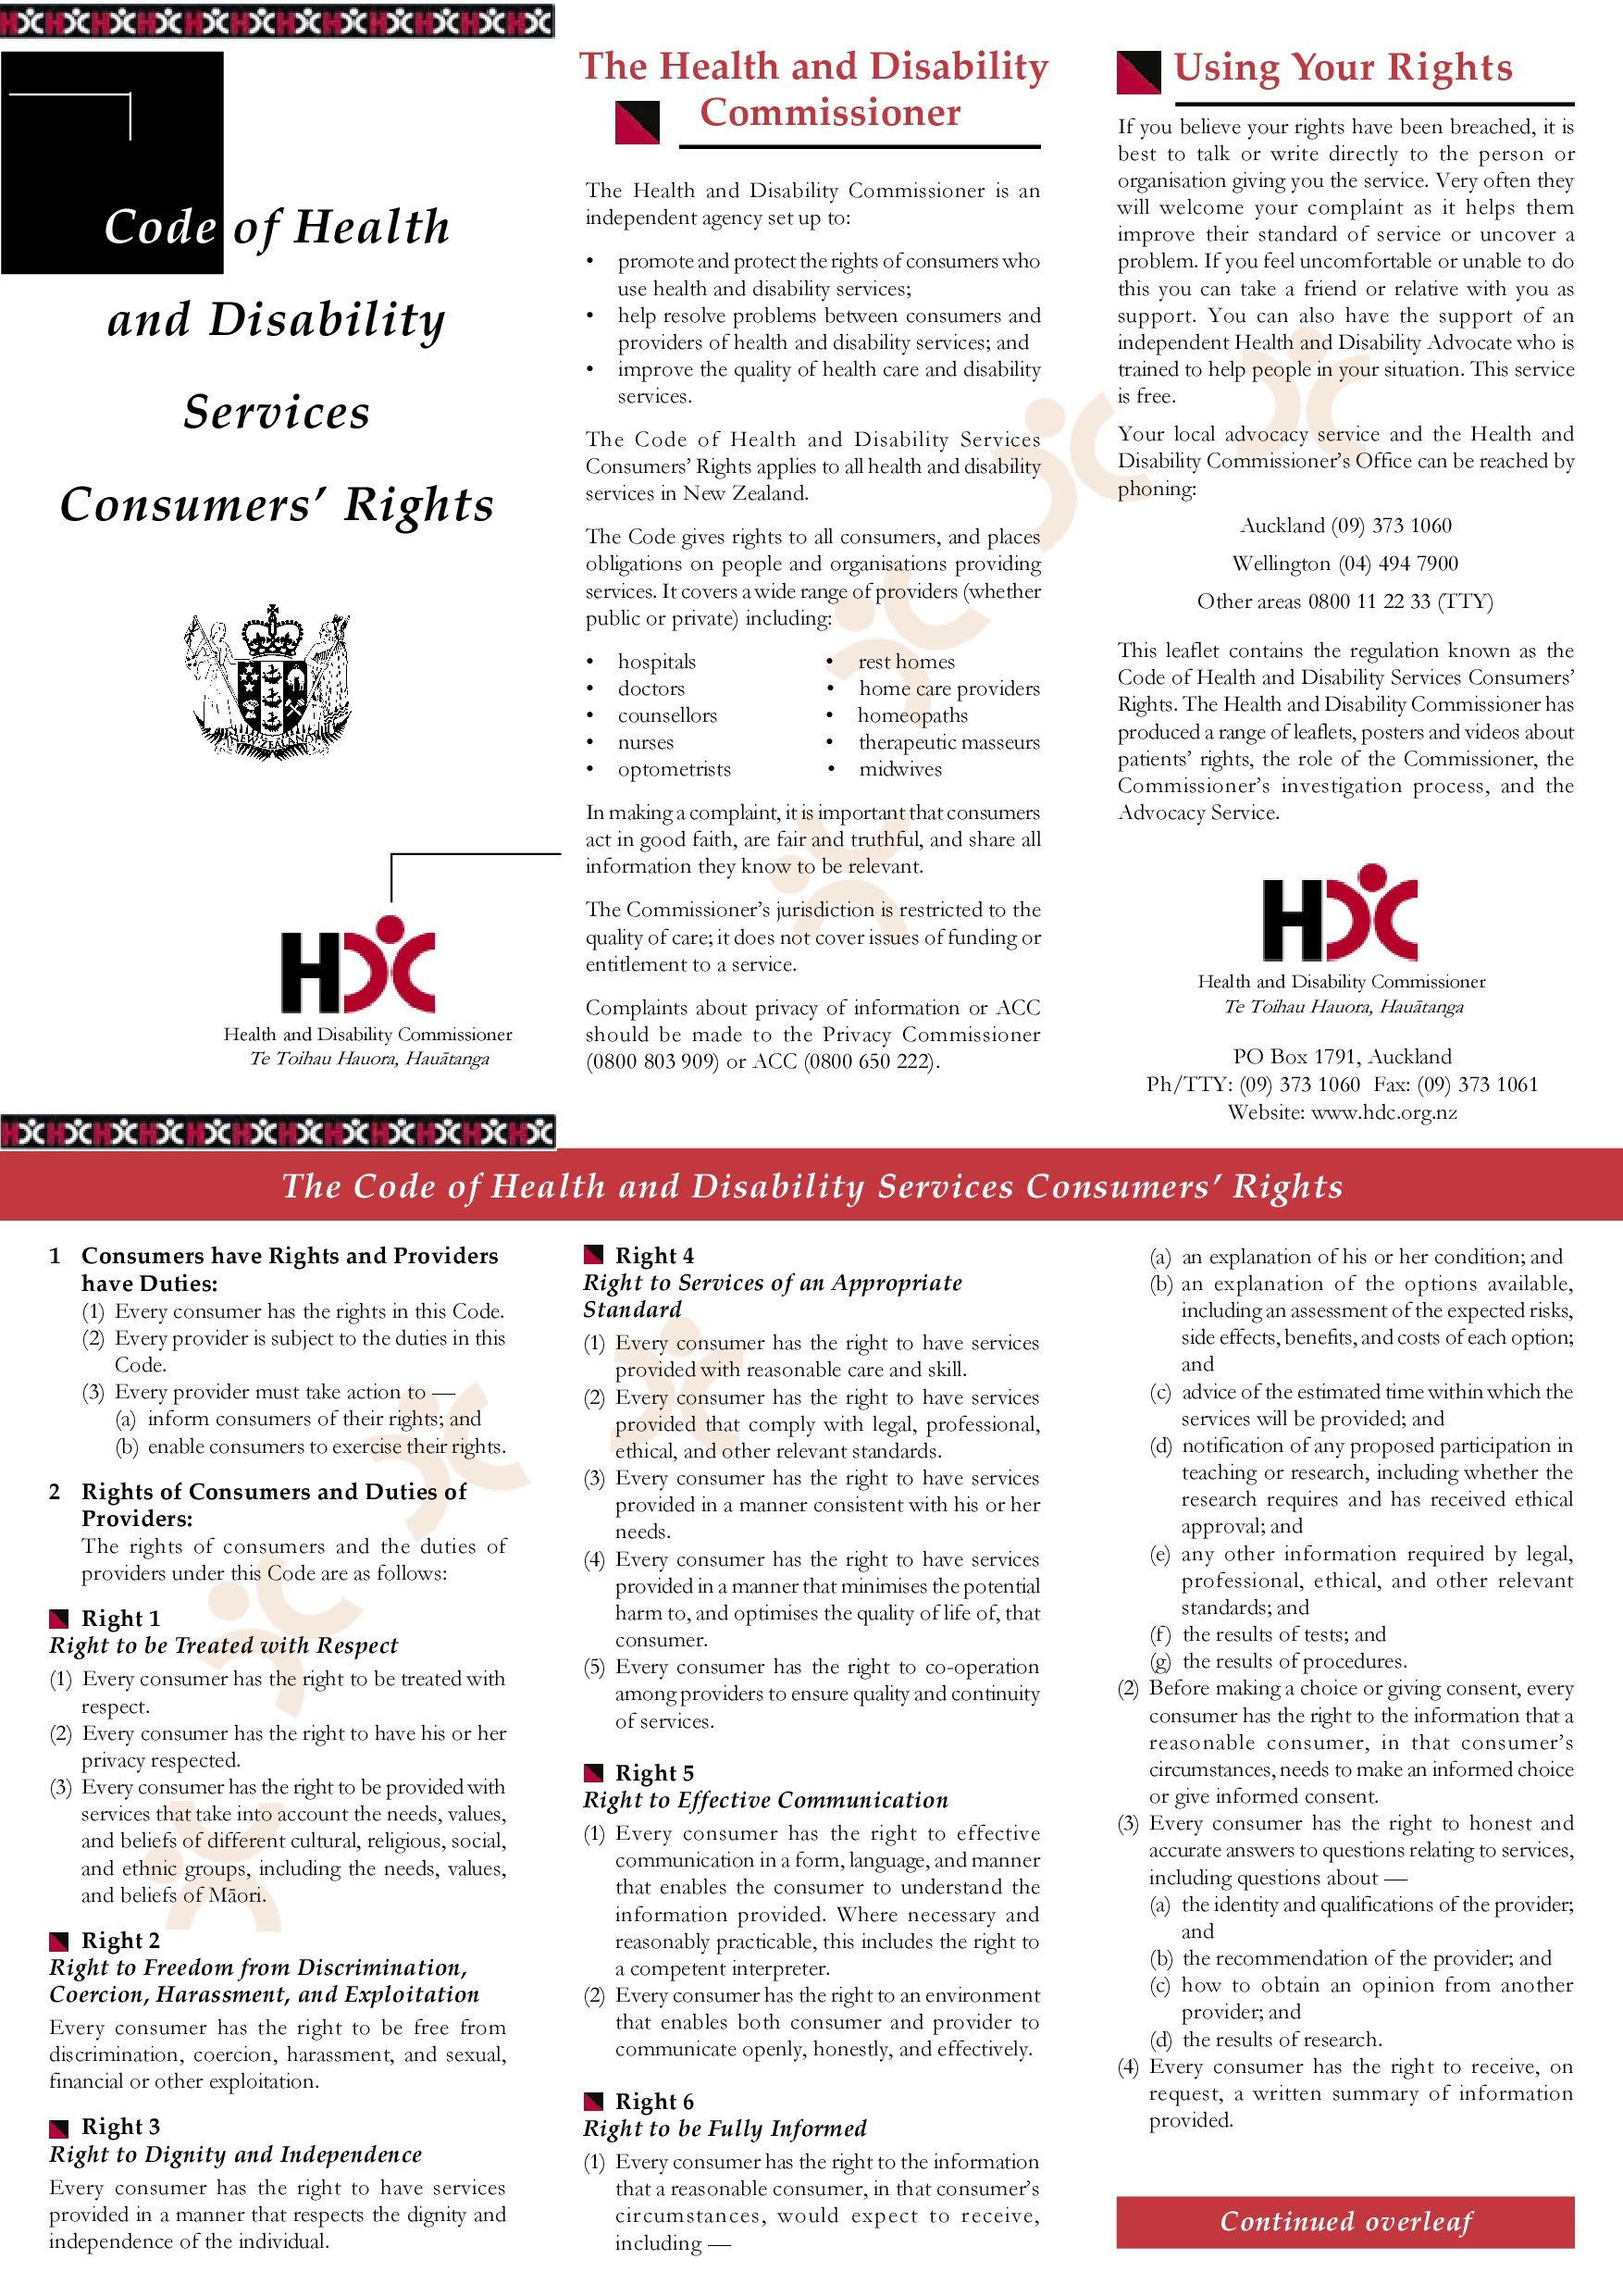 Health & Disability Code of Conduct-001.jpg